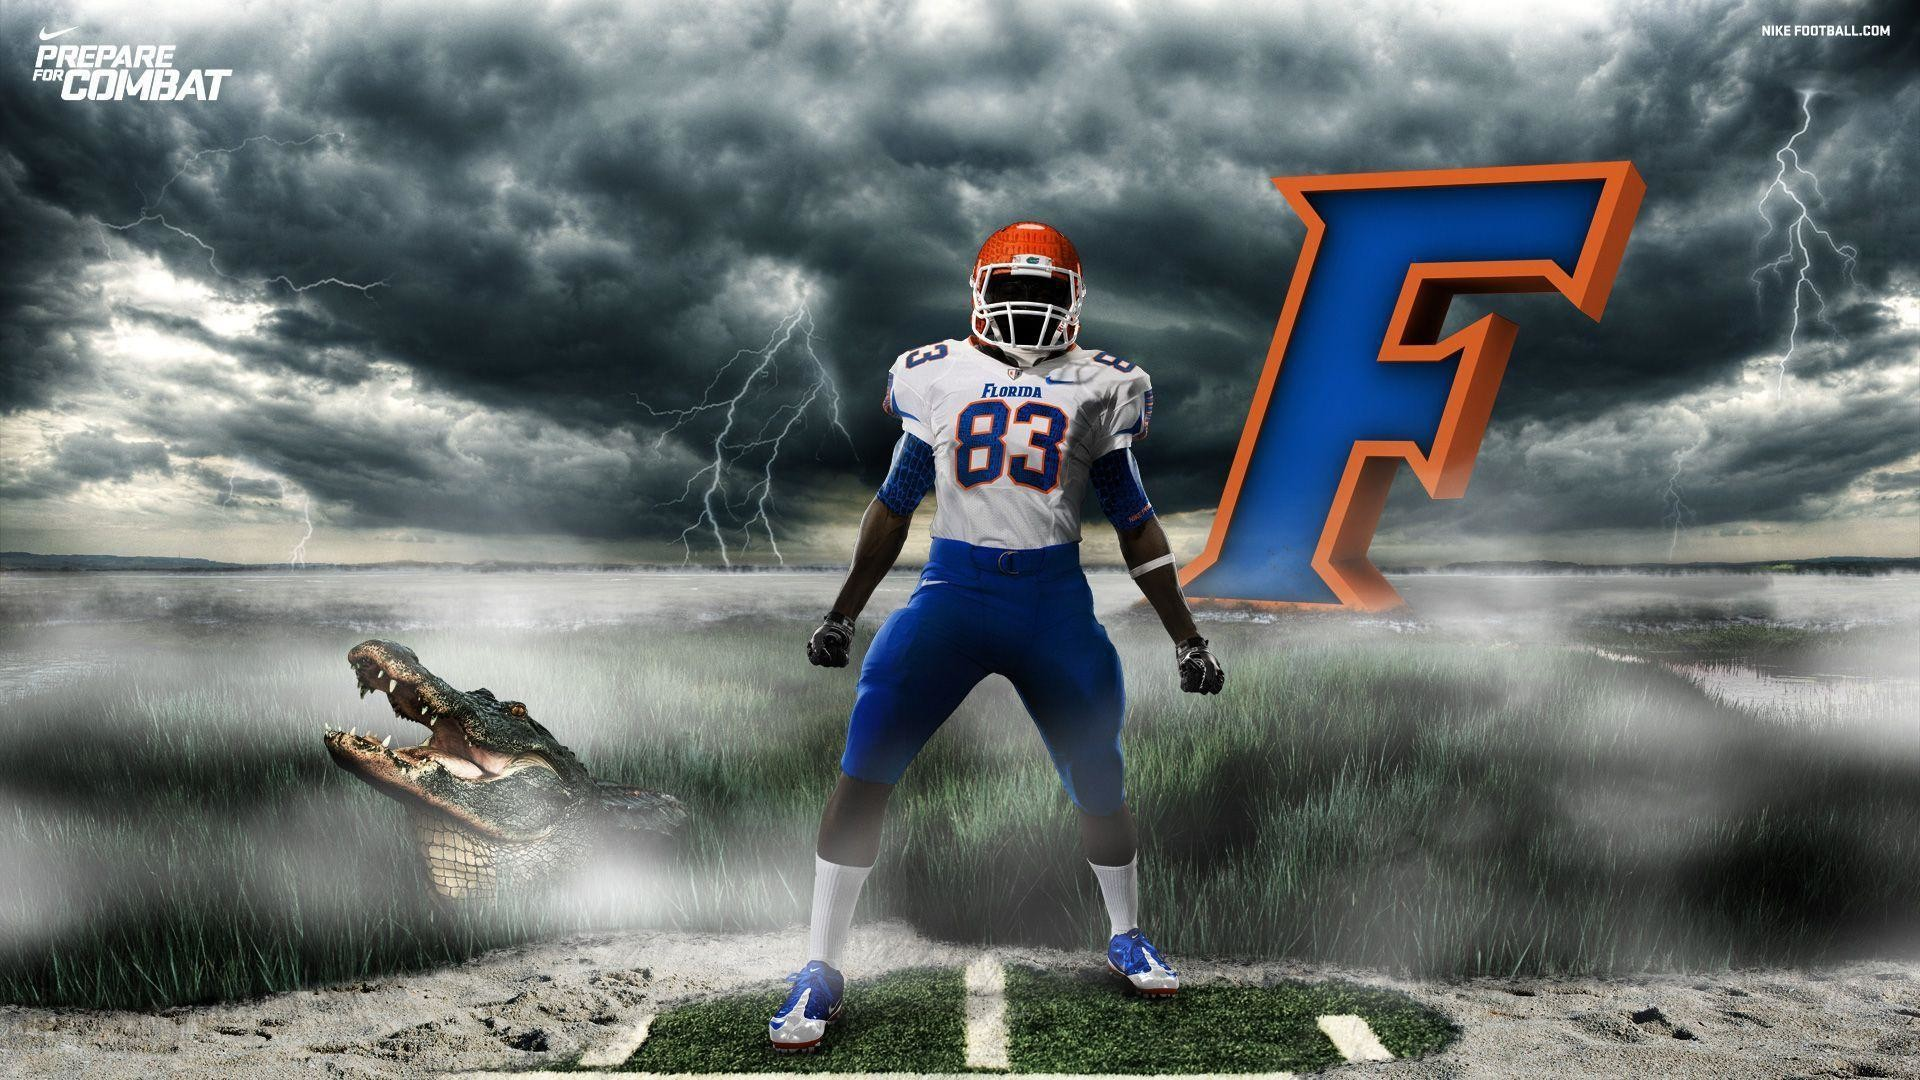 Florida gators football wallpapers 1920x1080 free download amazing florida gators football images voltagebd Image collections